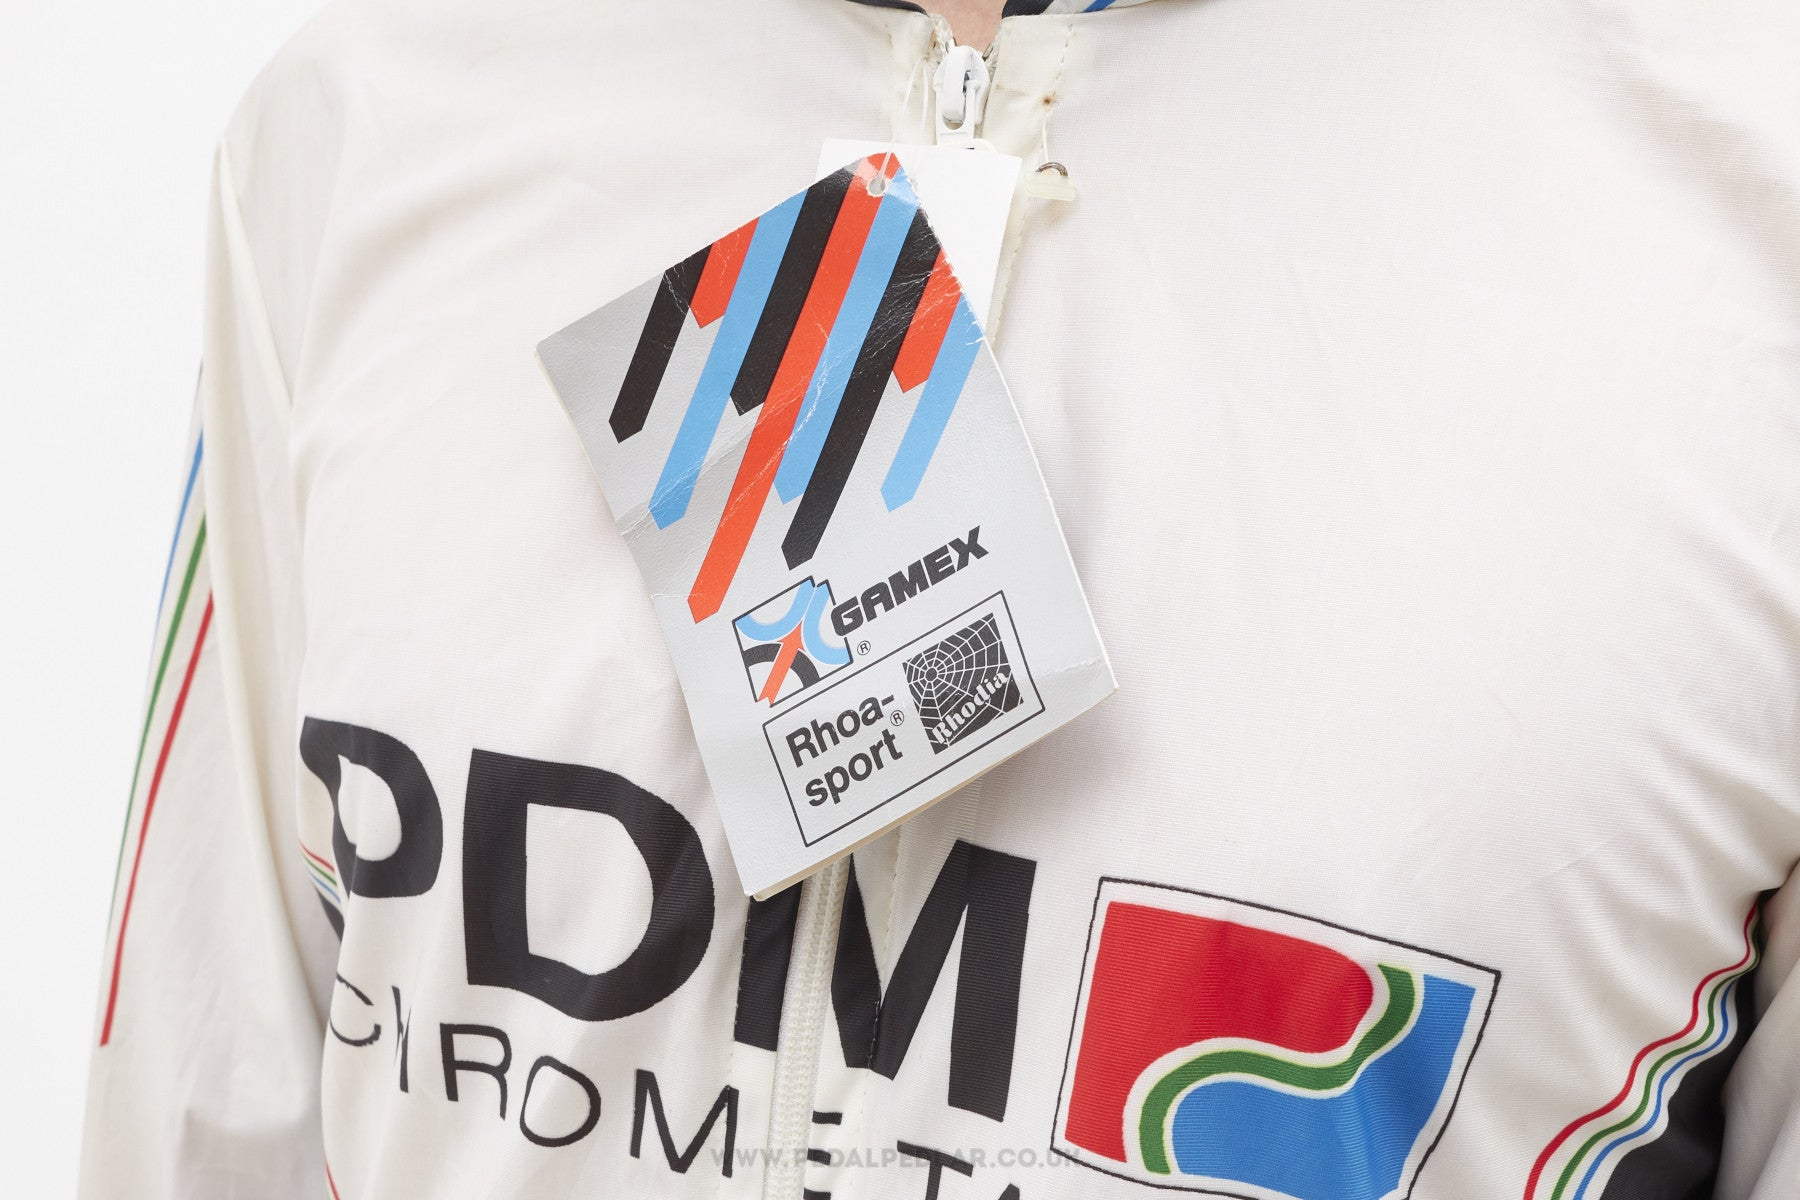 Team PDM Concorde Vintage Long Sleeved Cycling Jacket - Pedal Pedlar - 4 1db9c4978